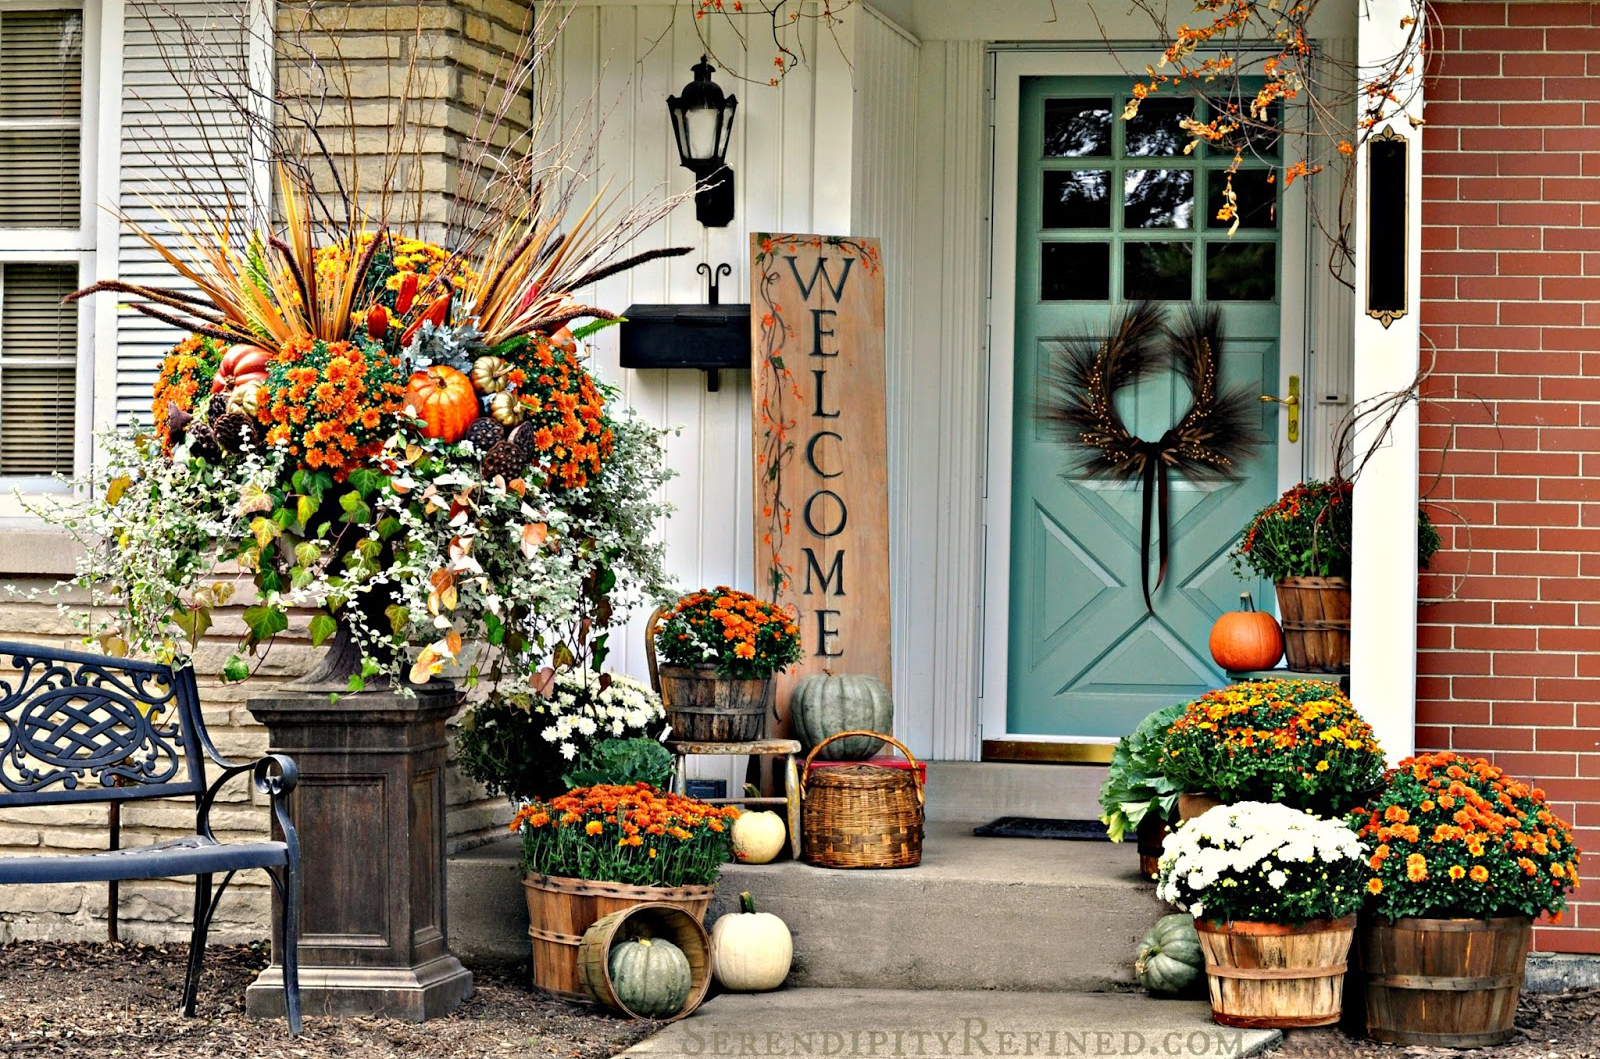 Outdoor Decorating Ideas 37 fall porch decorating ideas - ways to decorate your porch for fall